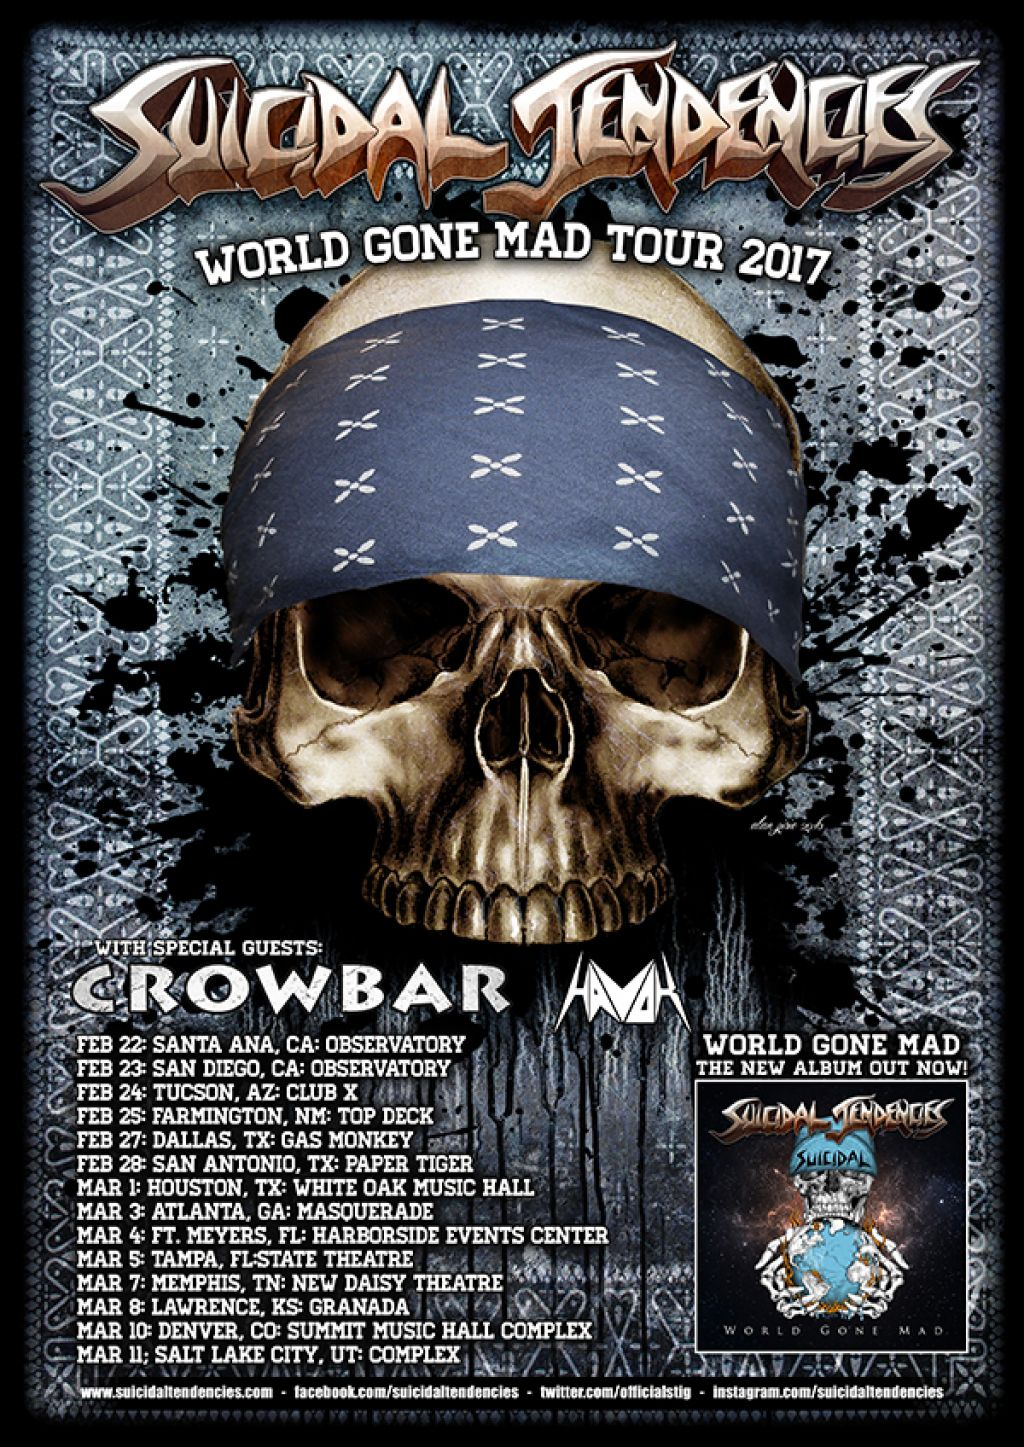 WORLD GONE MAD US TOUR ANNOUNCED!